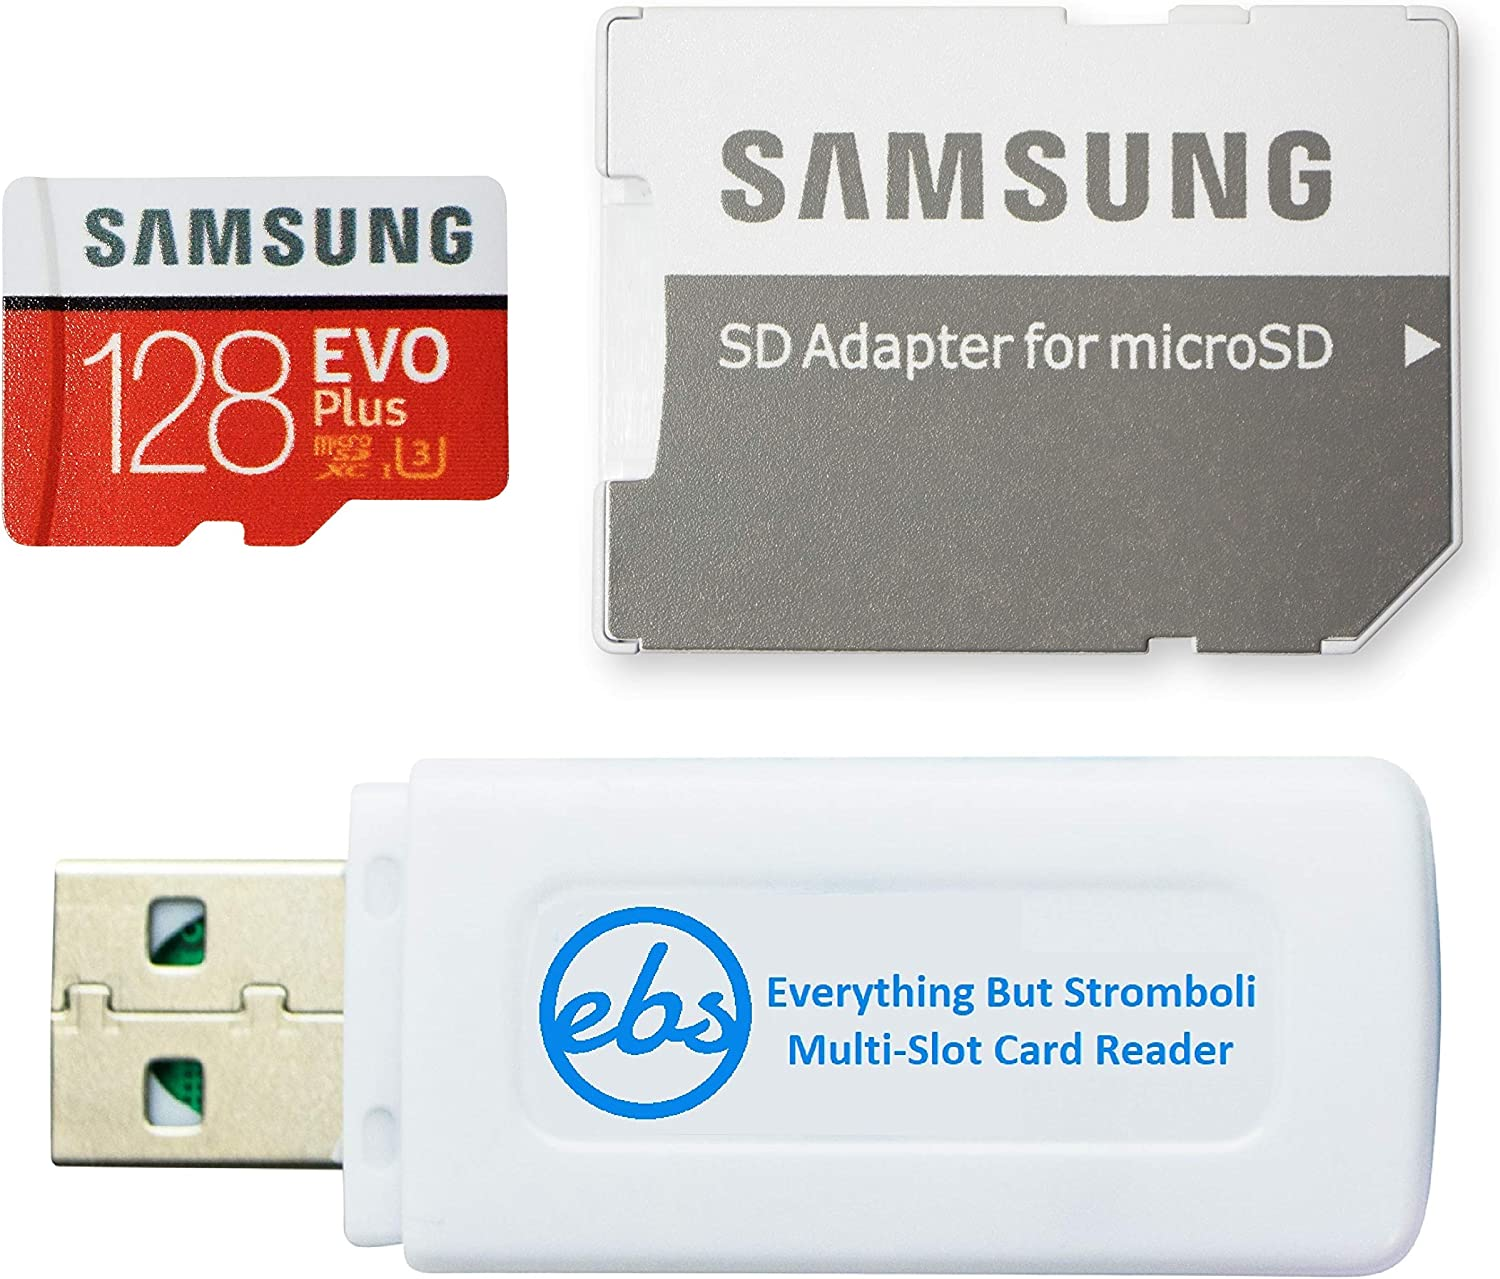 Samsung 128GB Micro SDXC EVO+ Plus Memory Card for Samsung Phone Works with Galaxy S20, S20+, S20 Ultra 5G, S10 Lite Phone (MB-MC128GA) Bundle with (1) Everything But Stromboli MicroSD Card Reader